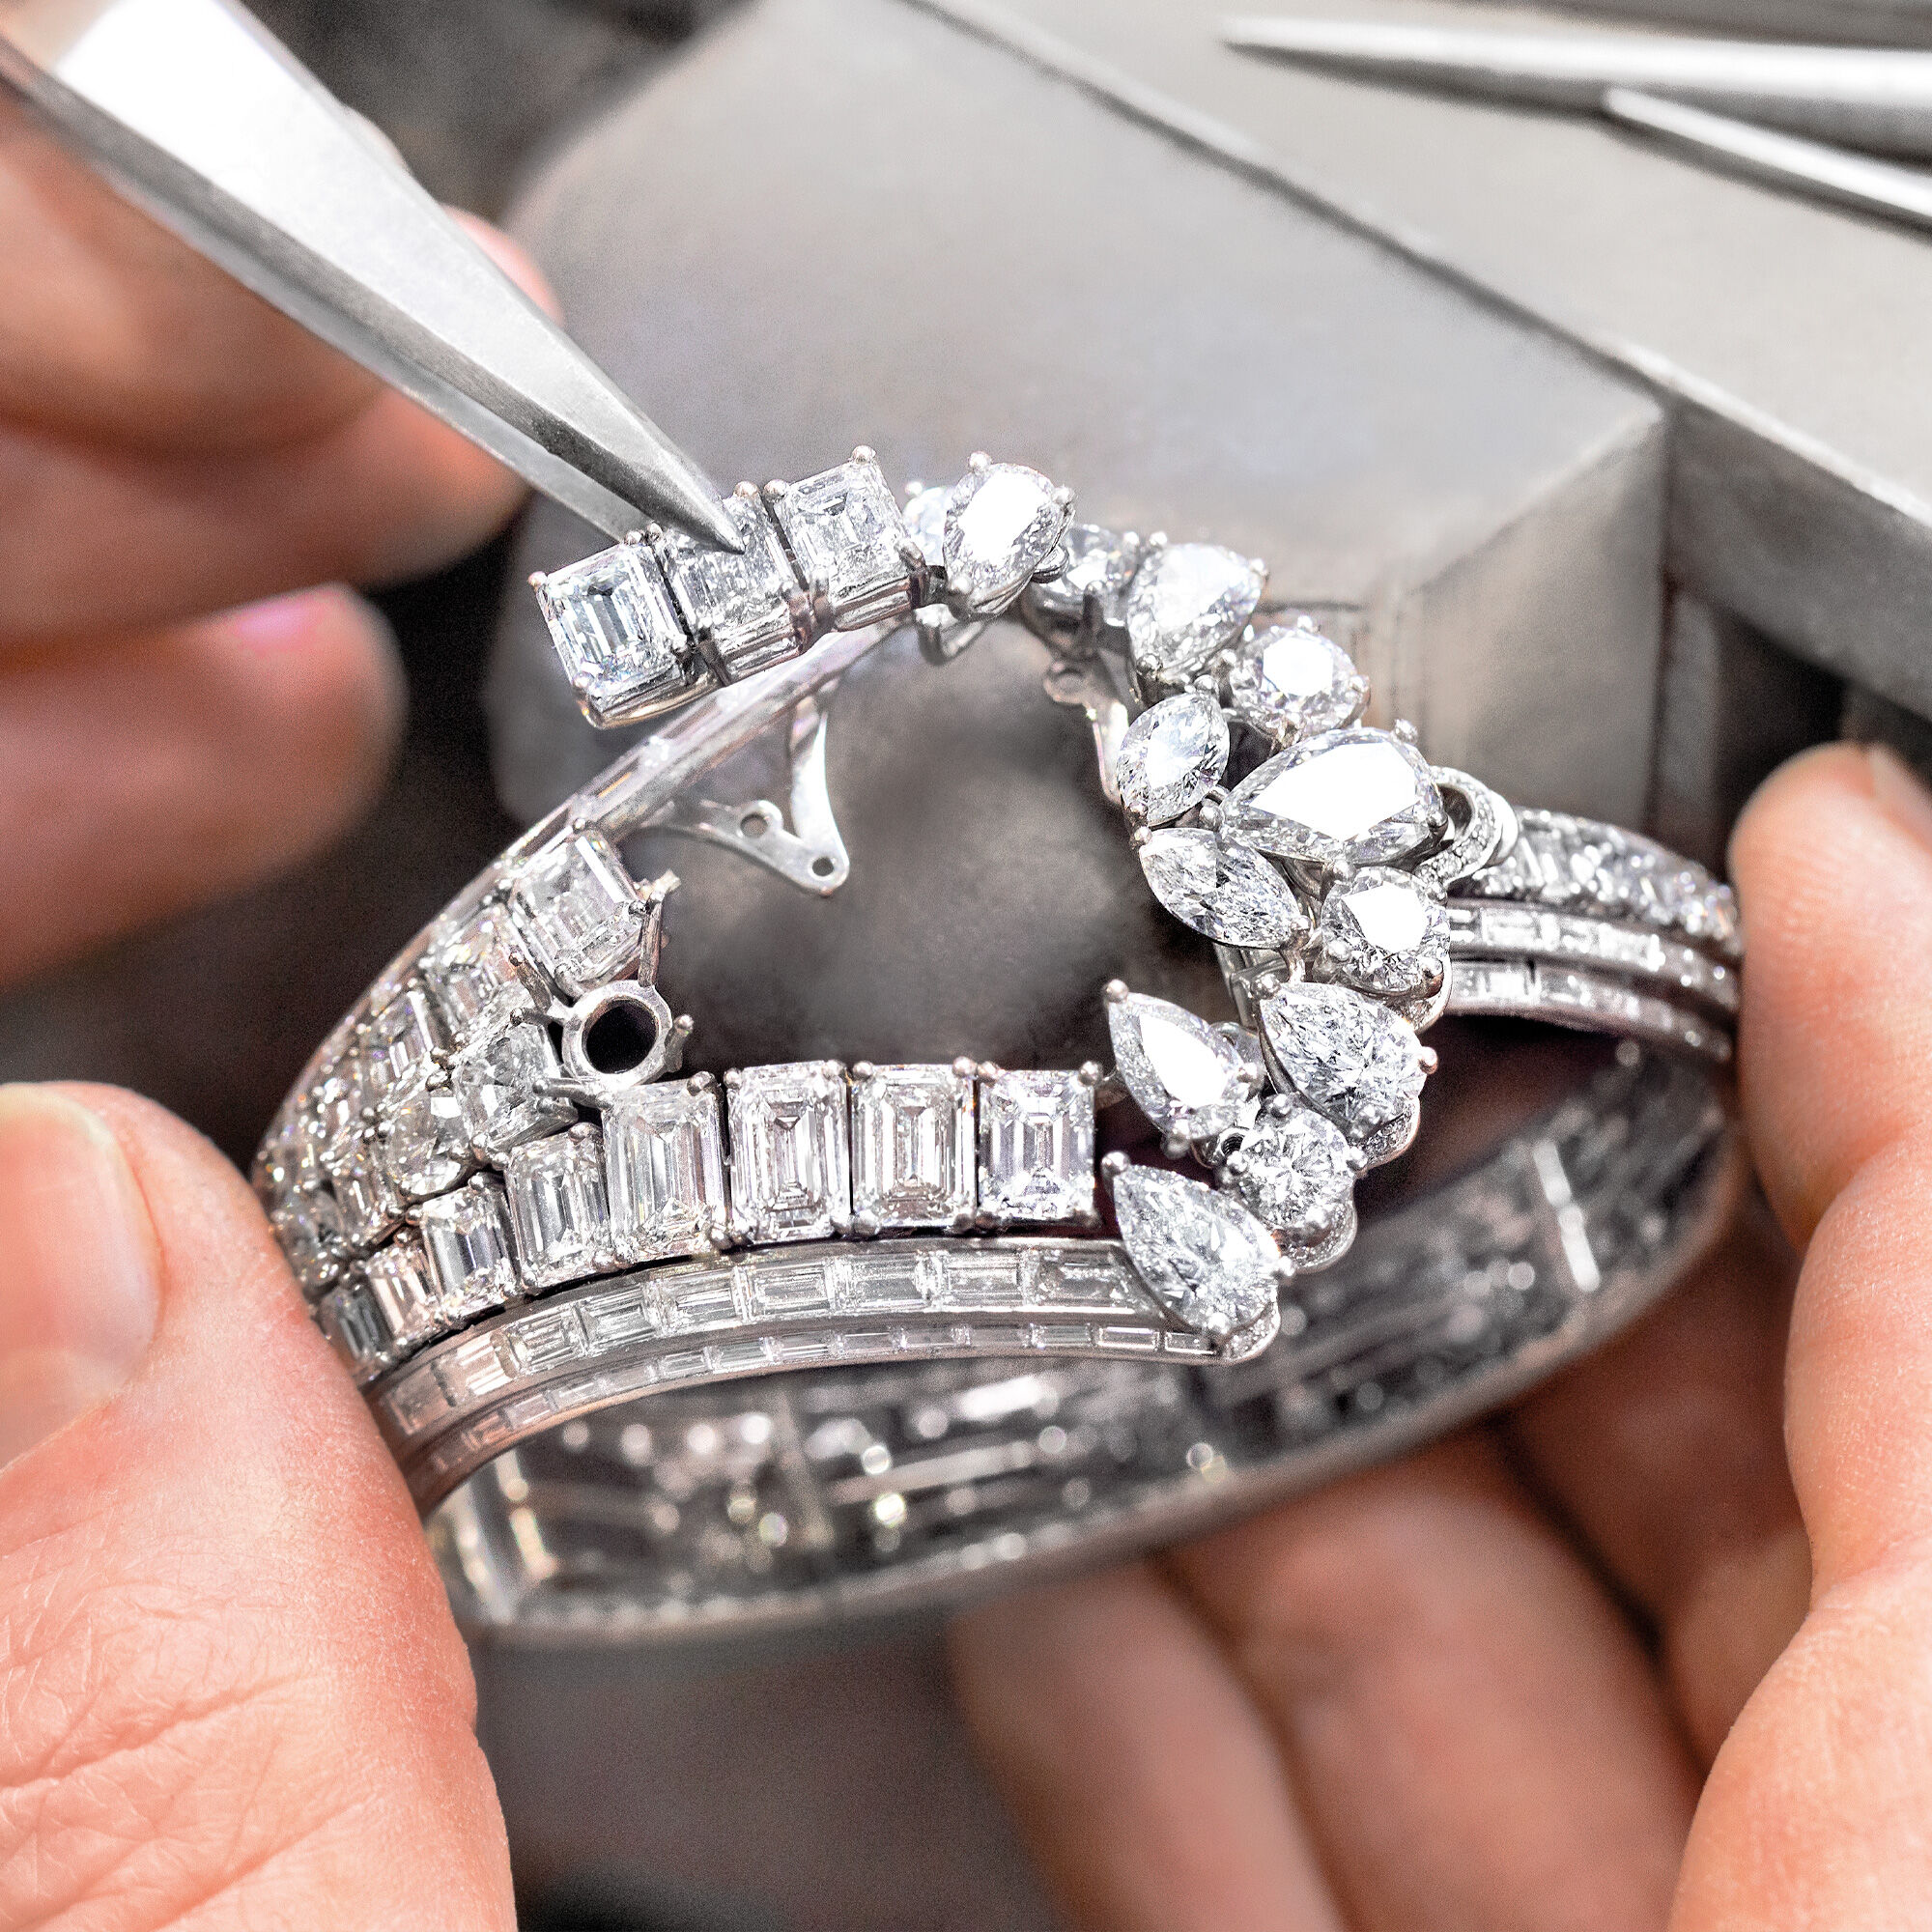 Garff Diamond setter seting the Graff Oval Diamond Secret Watch from the Graff unique timepieces collection